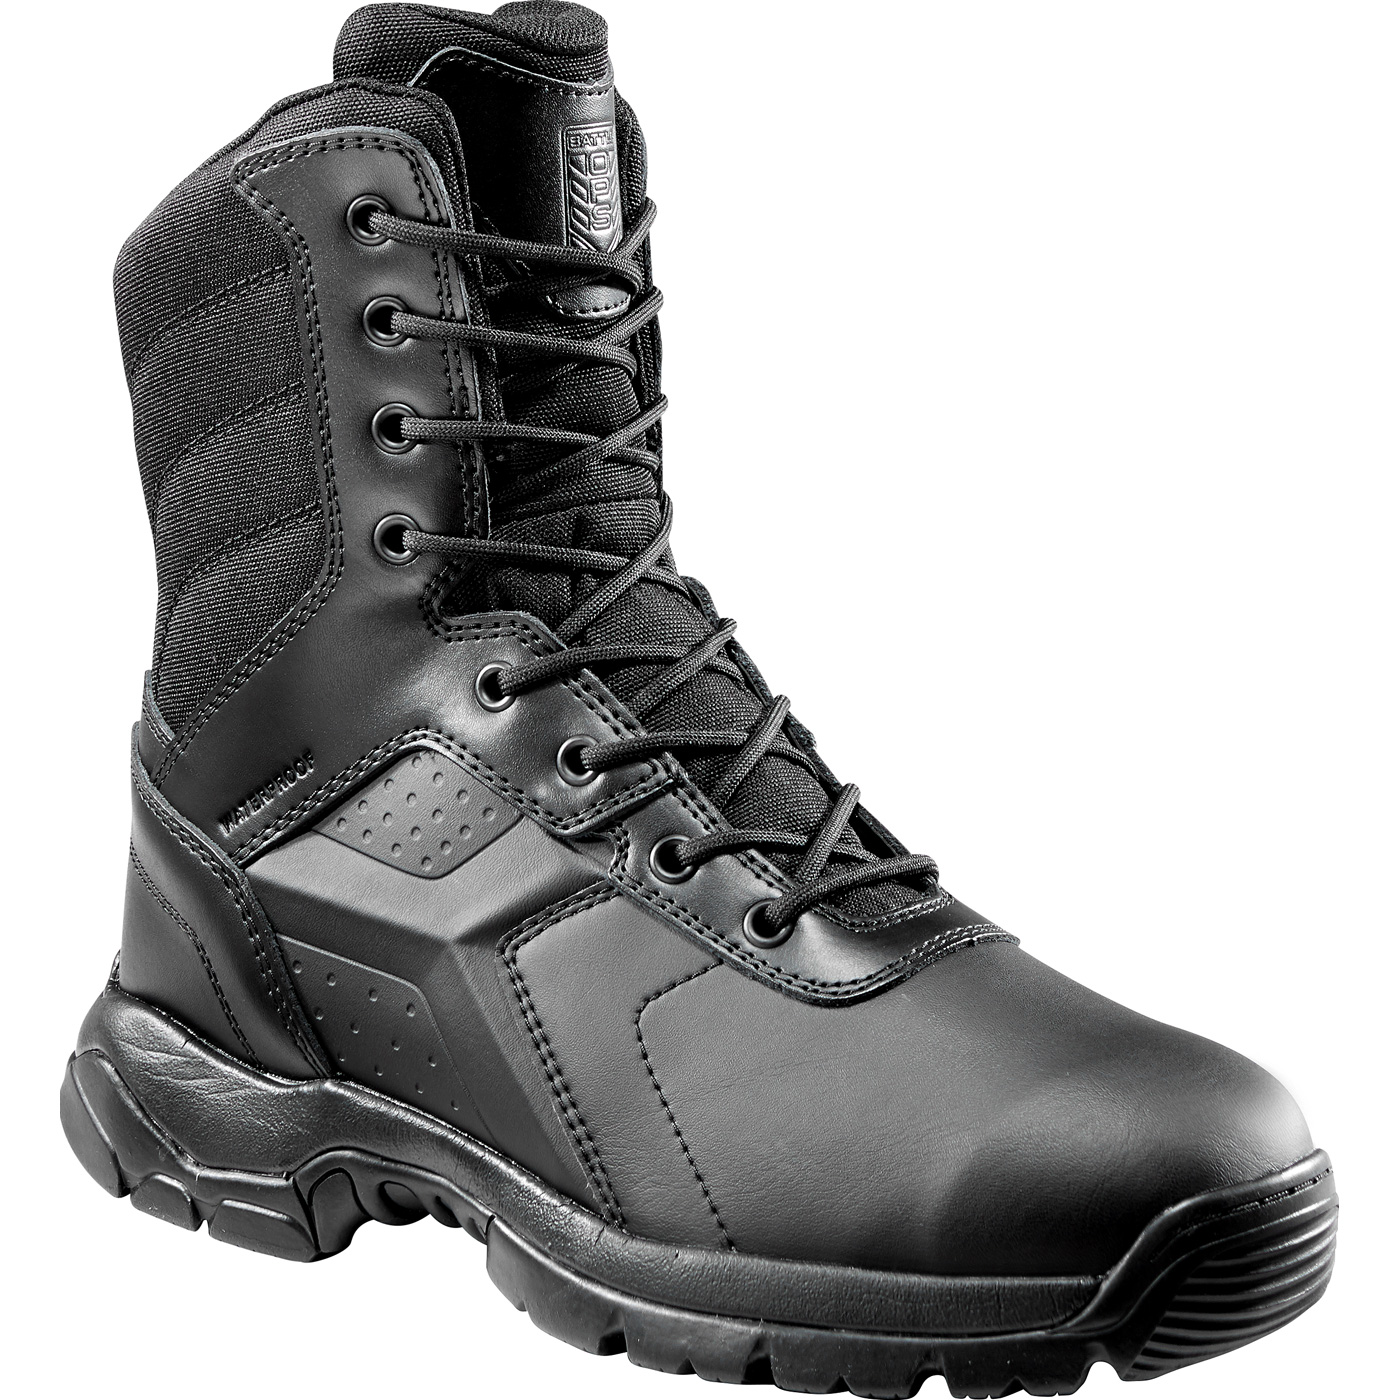 7c5bdb26bdd Battle Ops Men's 8 inch Composite Toe Electrical Hazard Waterproof Zipper  Tactical Boot